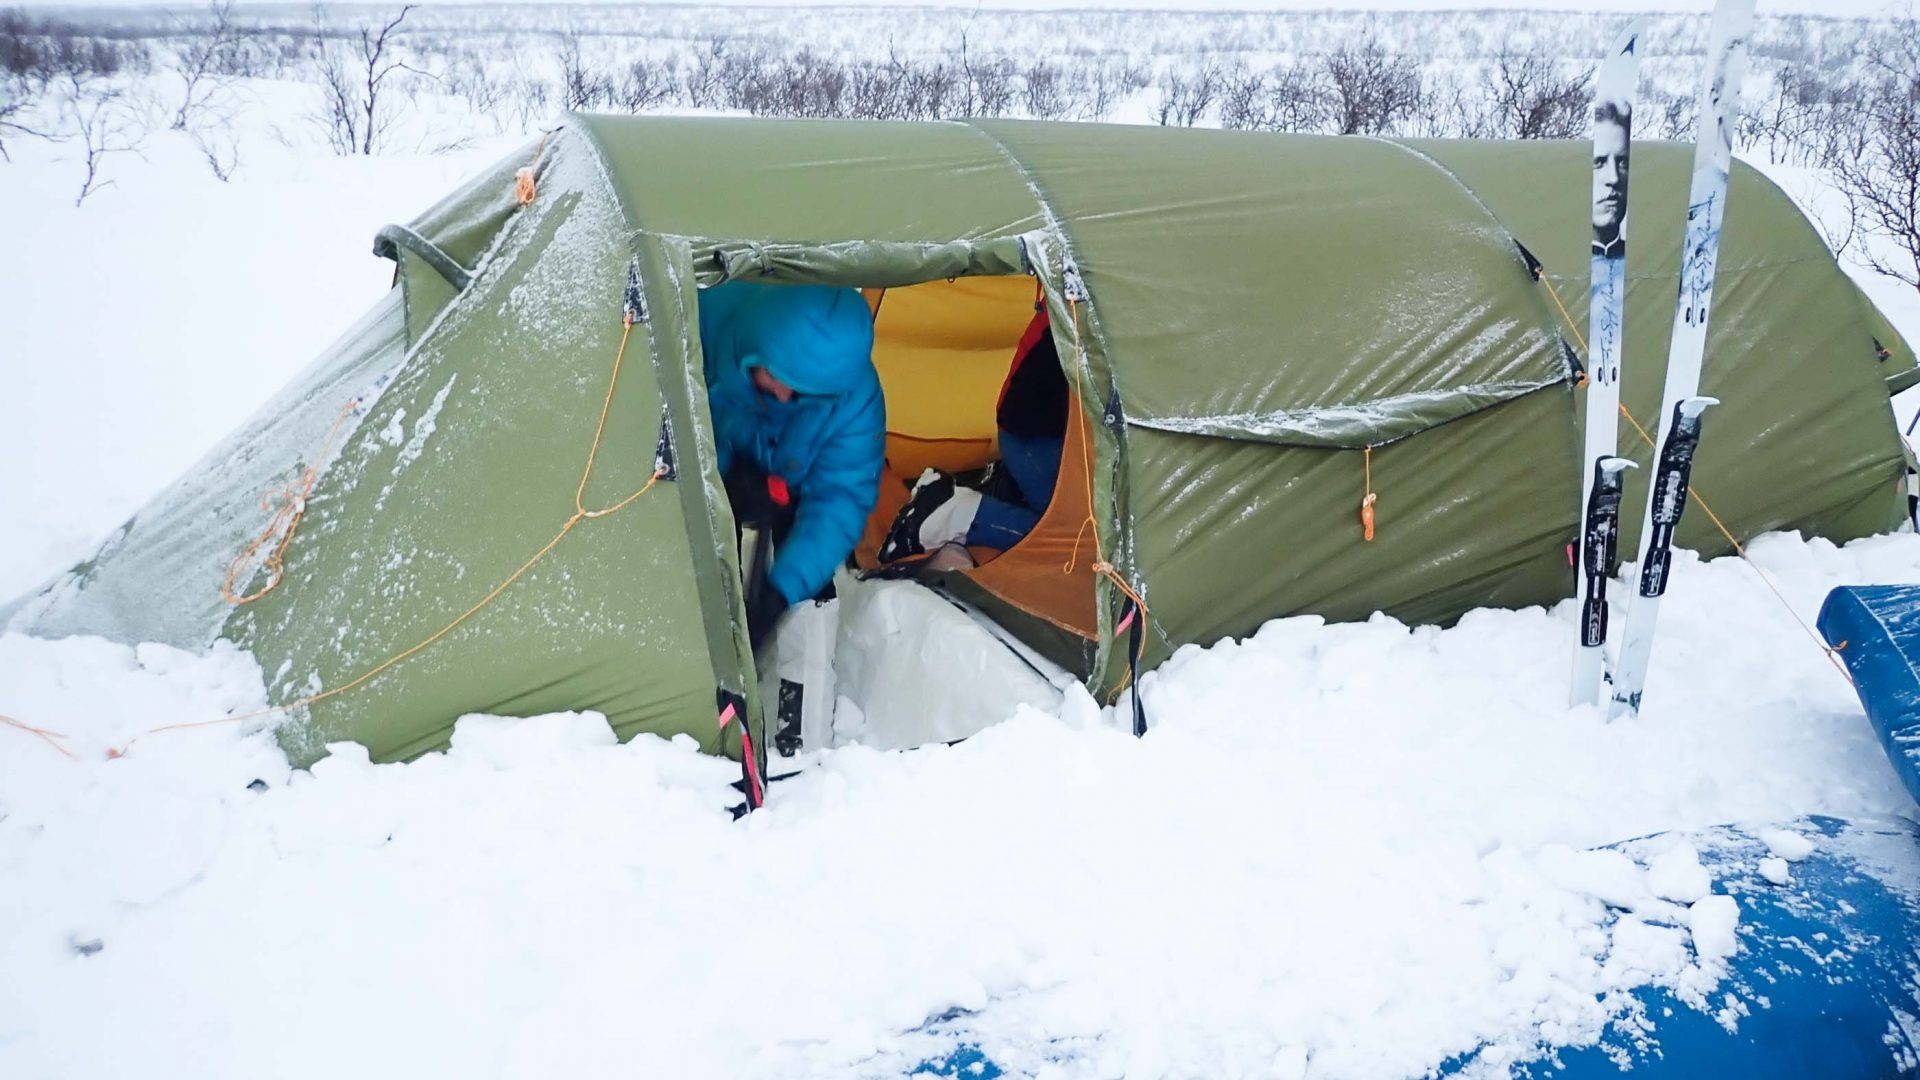 A tent buried in snow.